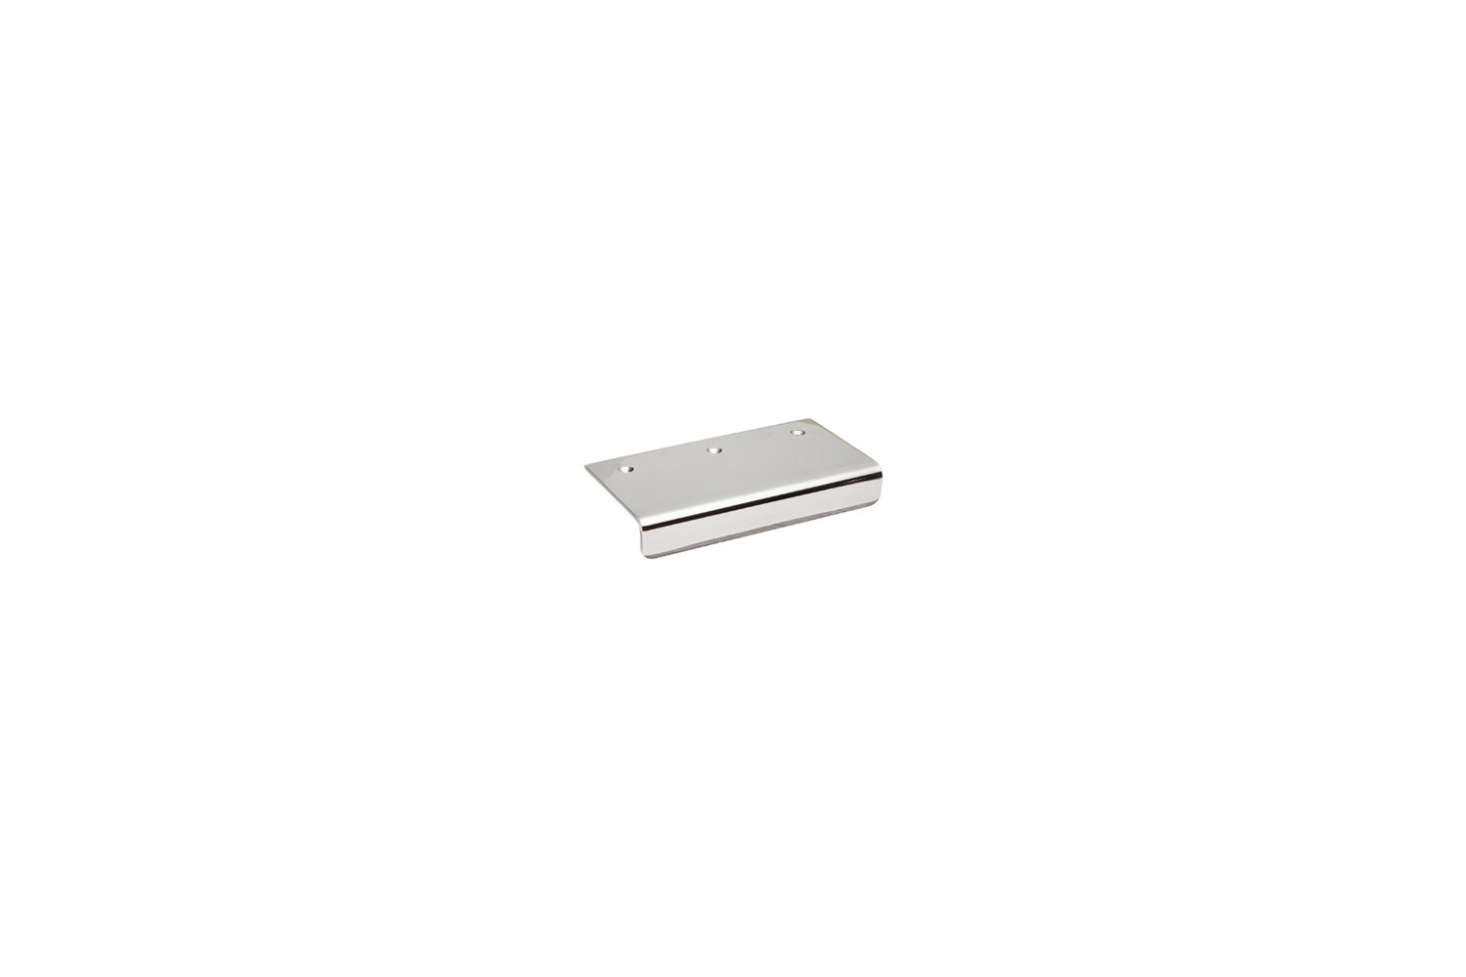 Both Julie and Francesca installedSugatsune Stainless Steel Edge Pull Handles in their Brooklyn kitchens; $12.39 for the approximately two-inch size on Amazon. For more, see10 Easy Pieces: Silver Finish Edge Pulls.